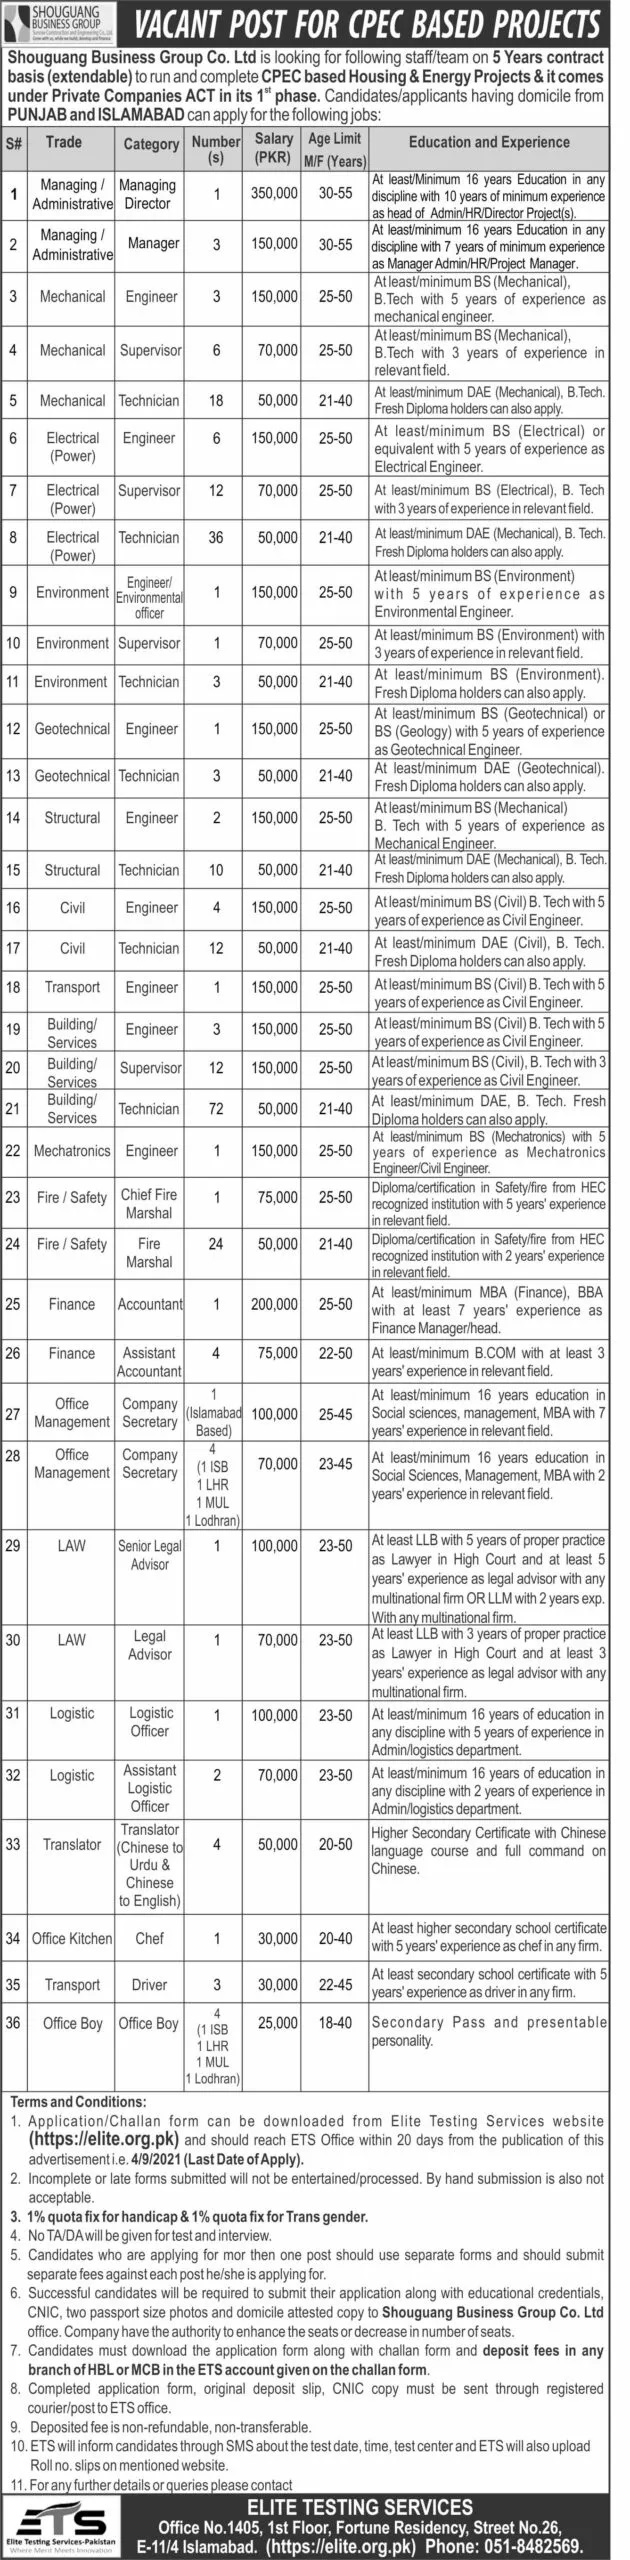 Shouguang Business Group CPEC Jobs ETS Test Roll No Slip Elite Testing Services